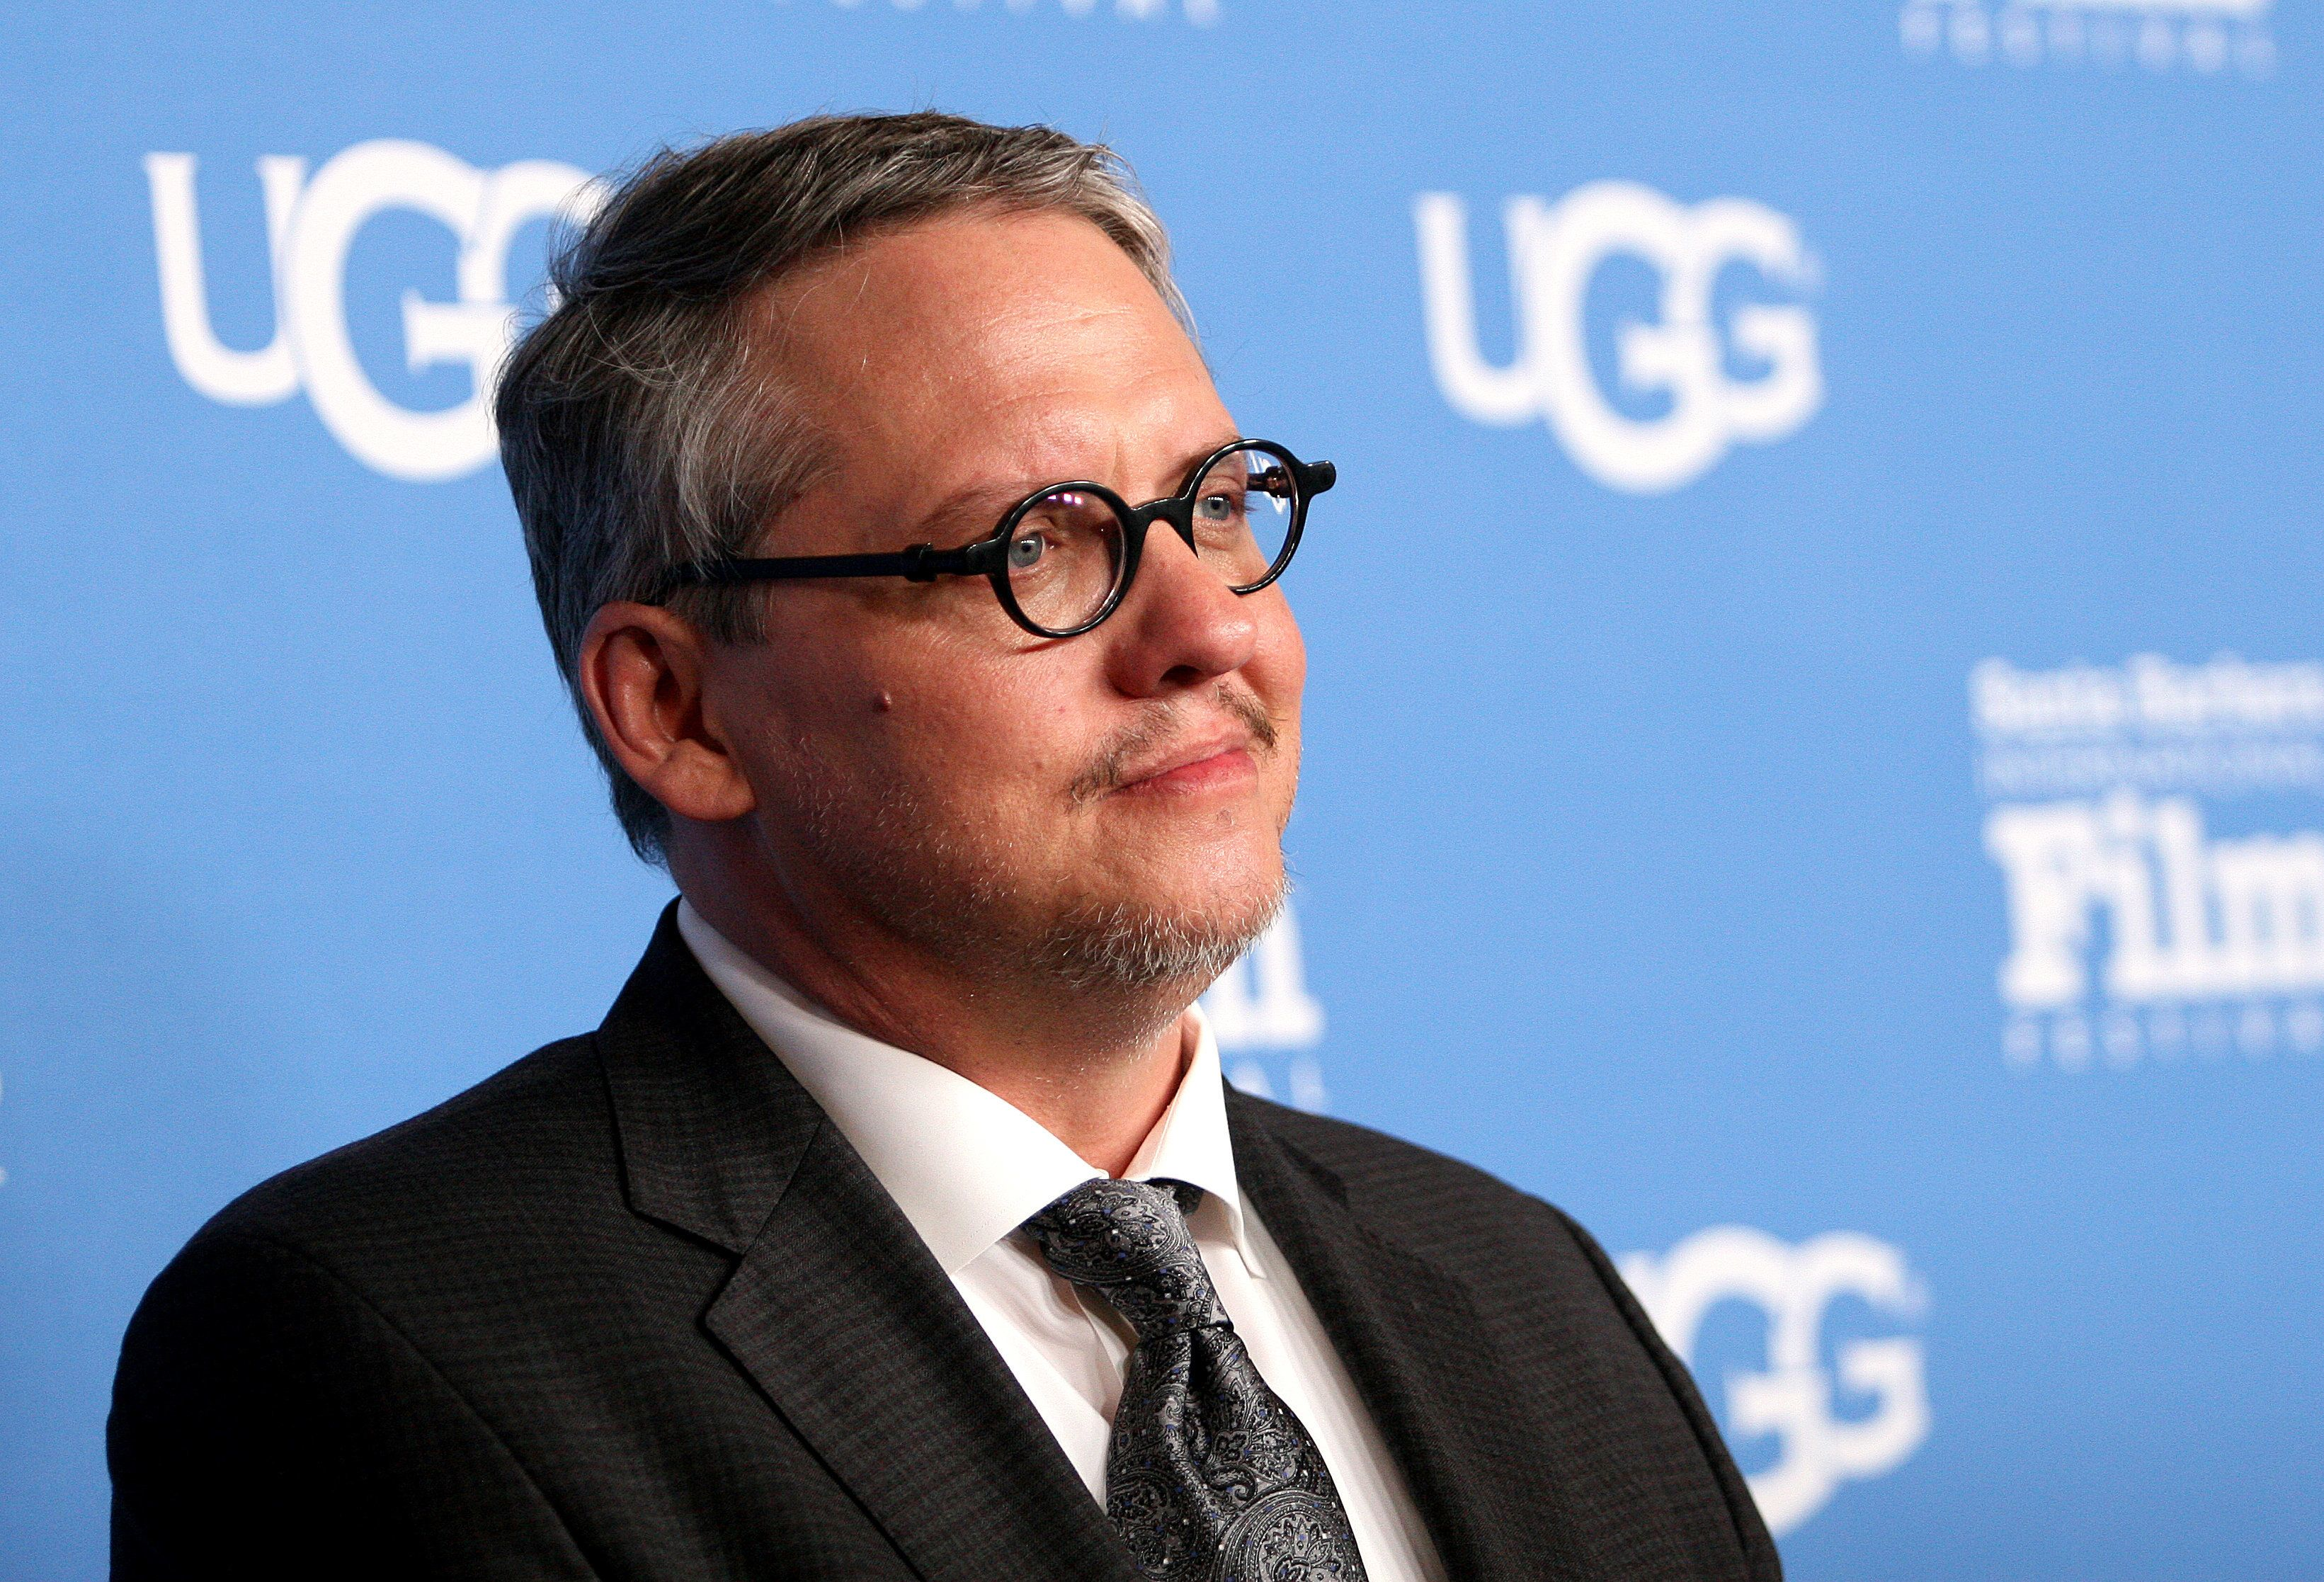 SANTA BARBARA, CA - FEBRUARY 11:  Director Adam McKay attends the Outstanding Directors Awards at the Arlington Theater during the 31st Santa Barbara International Film Festival on February 11, 2016 in Santa Barbara, California.  (Photo by Matthew Simmons/Getty Images for Santa Barbara International Film Festival)